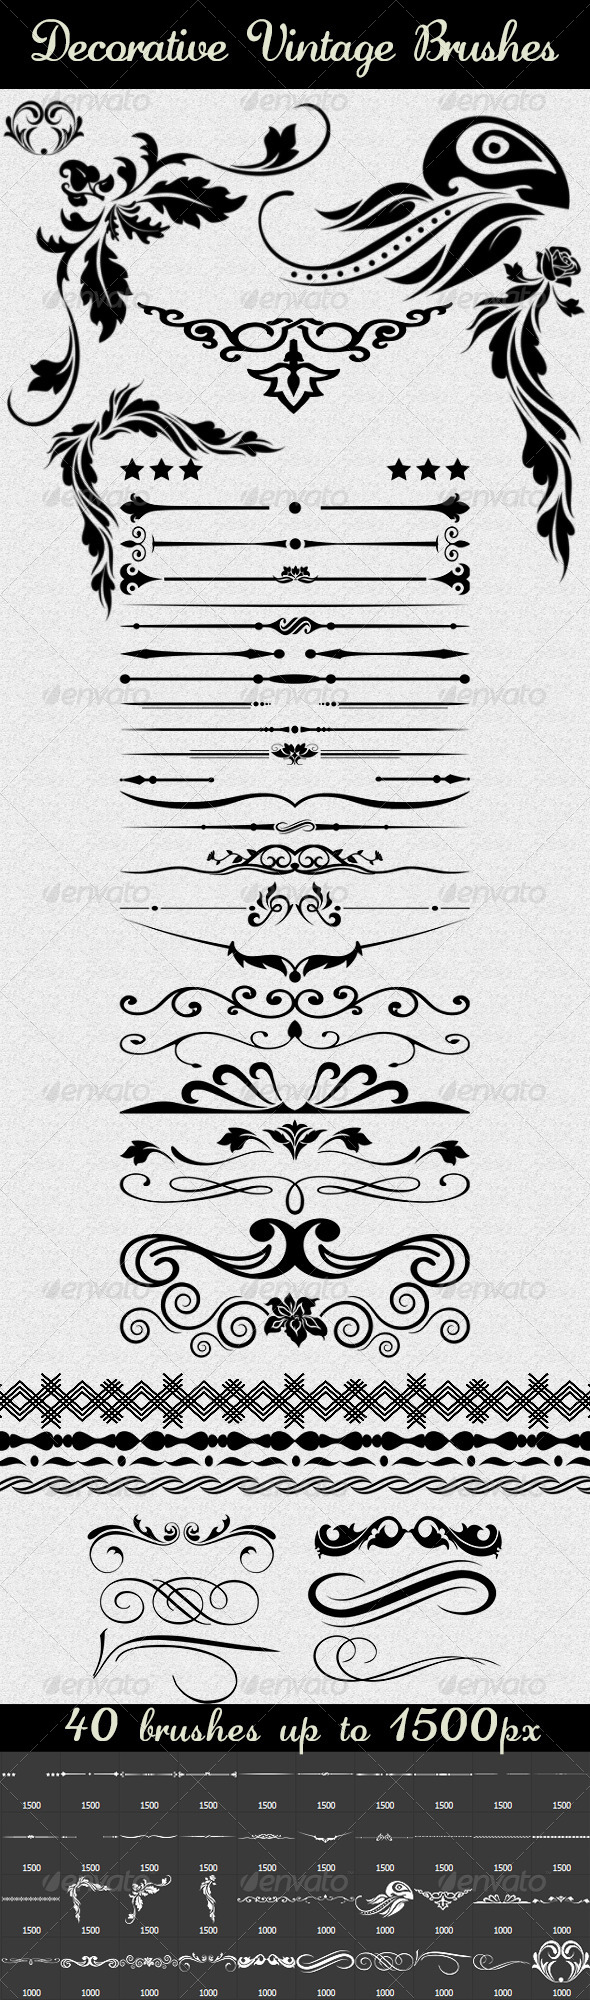 GraphicRiver 40 Decorative Vintage Brushes 8030194